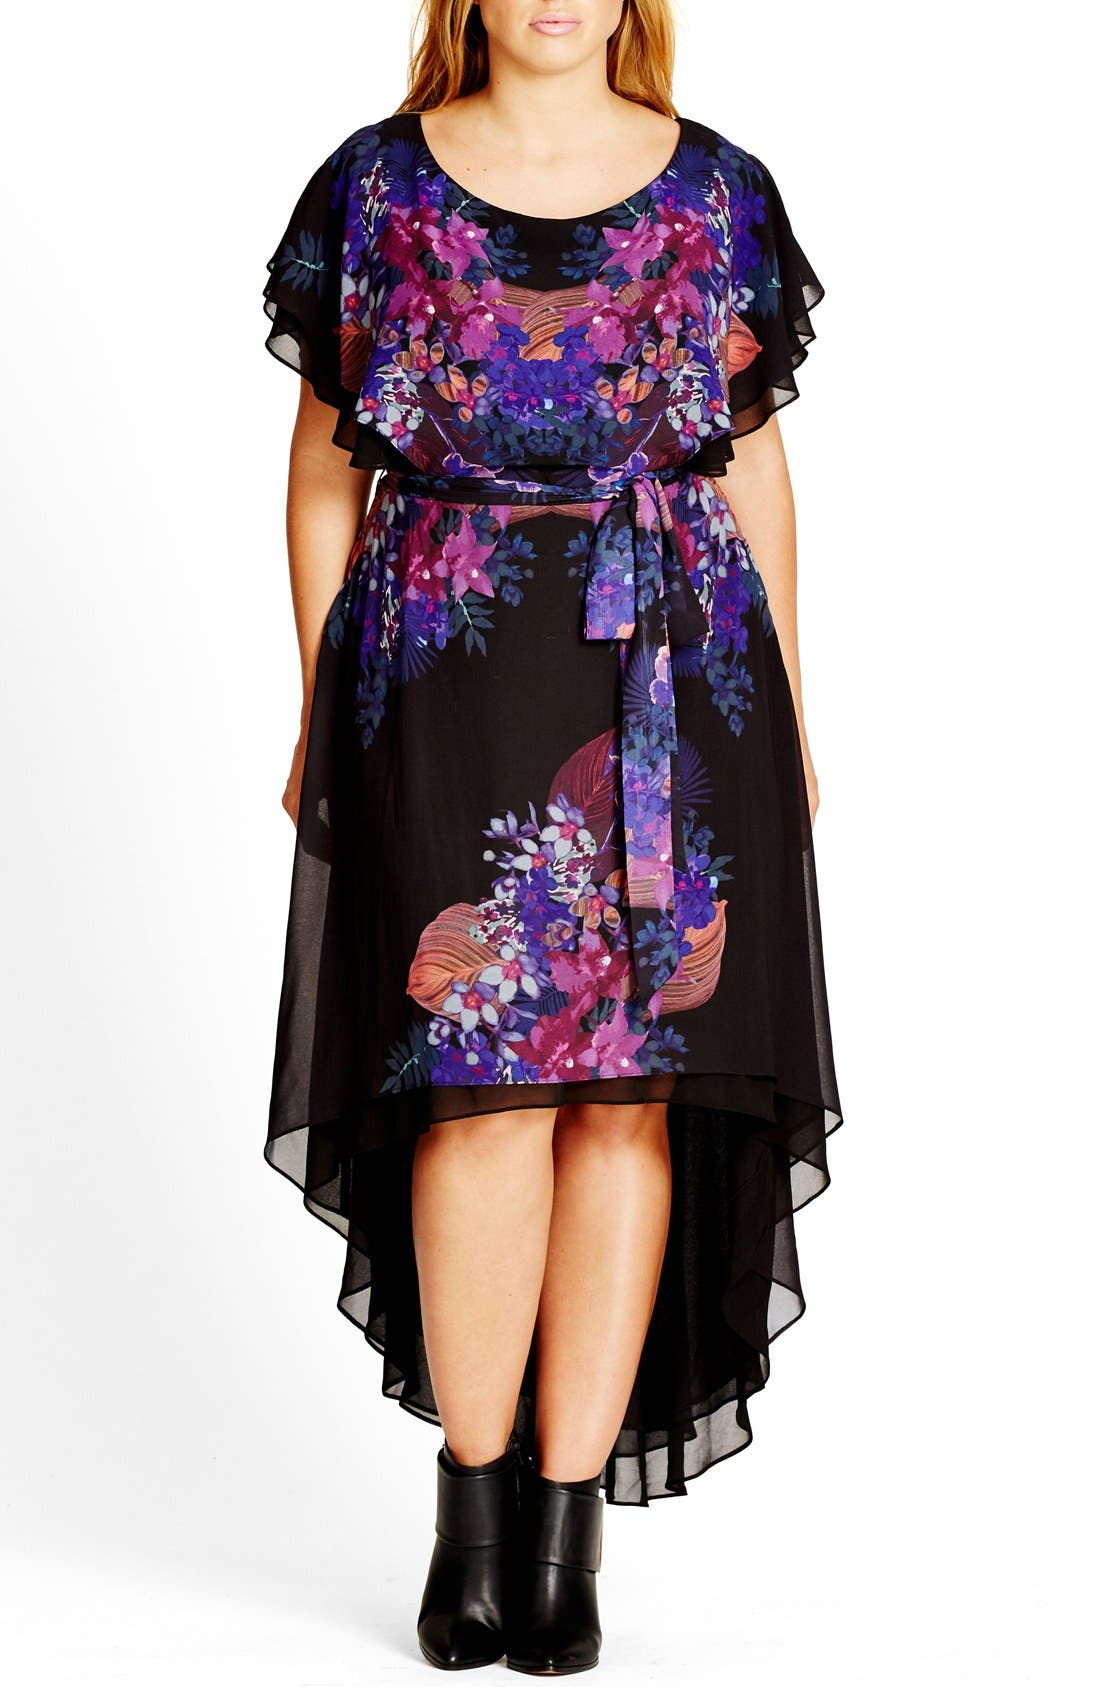 City Chic 'Dream Catcher' Belted Floral Print High/Low ...